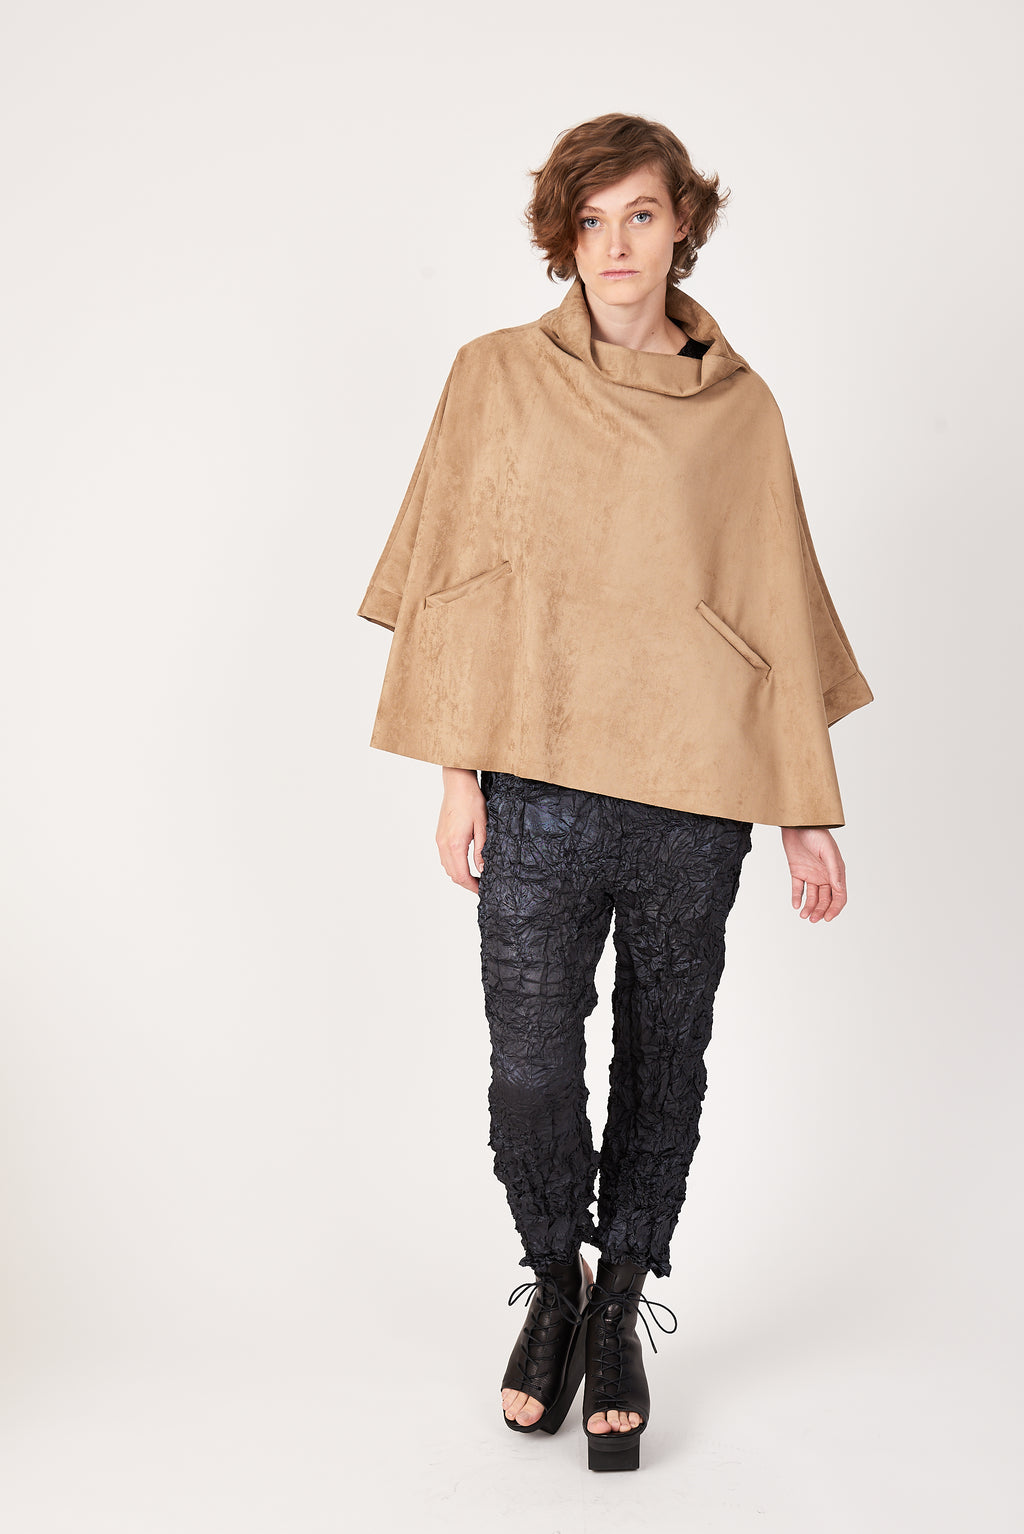 SALE Tortuga Poncho in Camel Luxe Microsuede (Vegan)